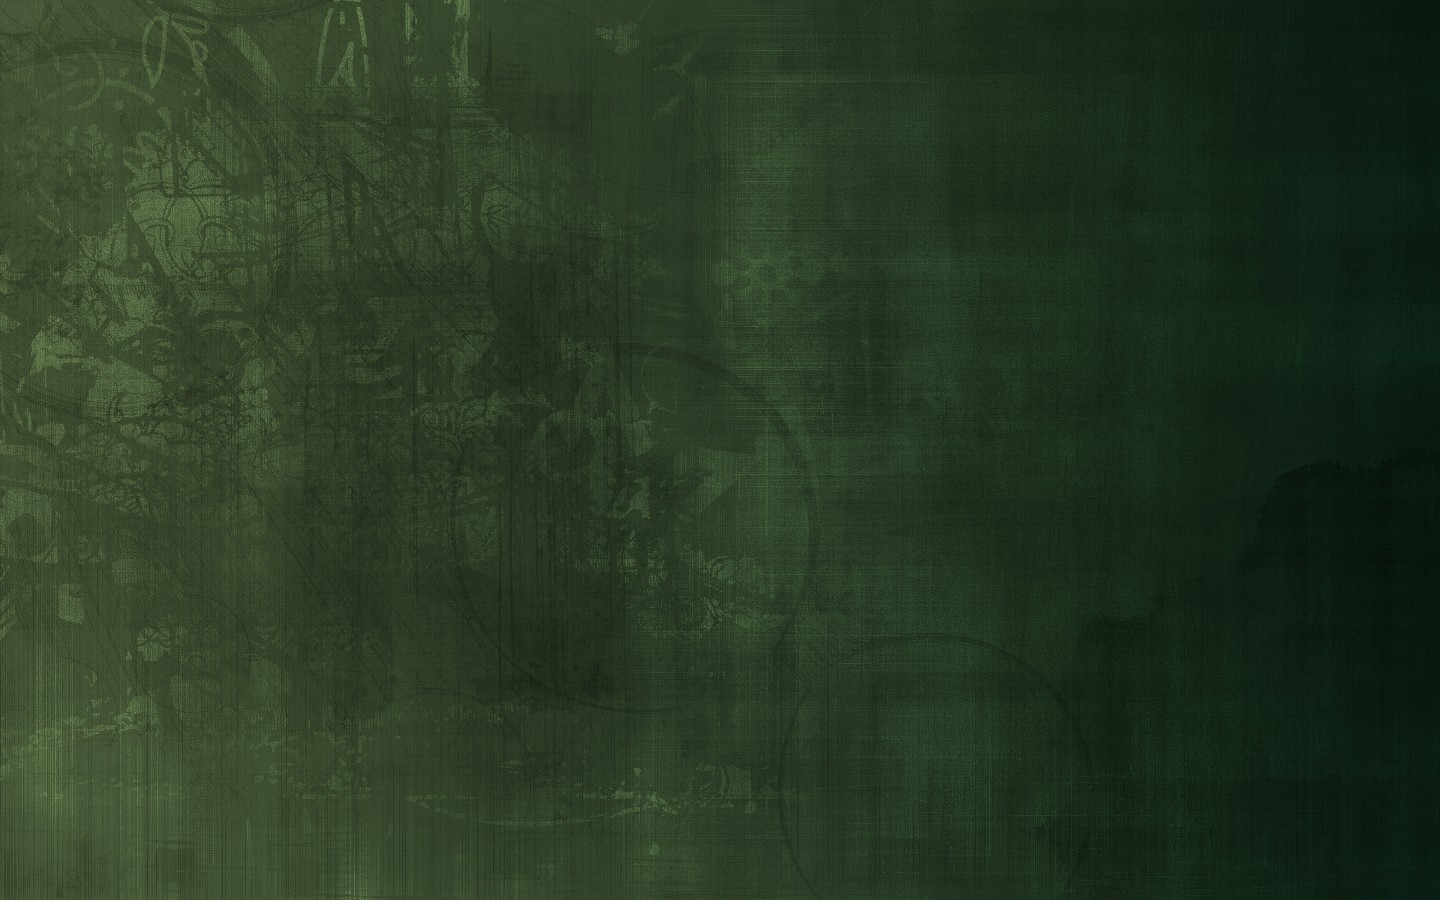 Green And Black Abstract Wallpaper 14 Background Wallpaper ...